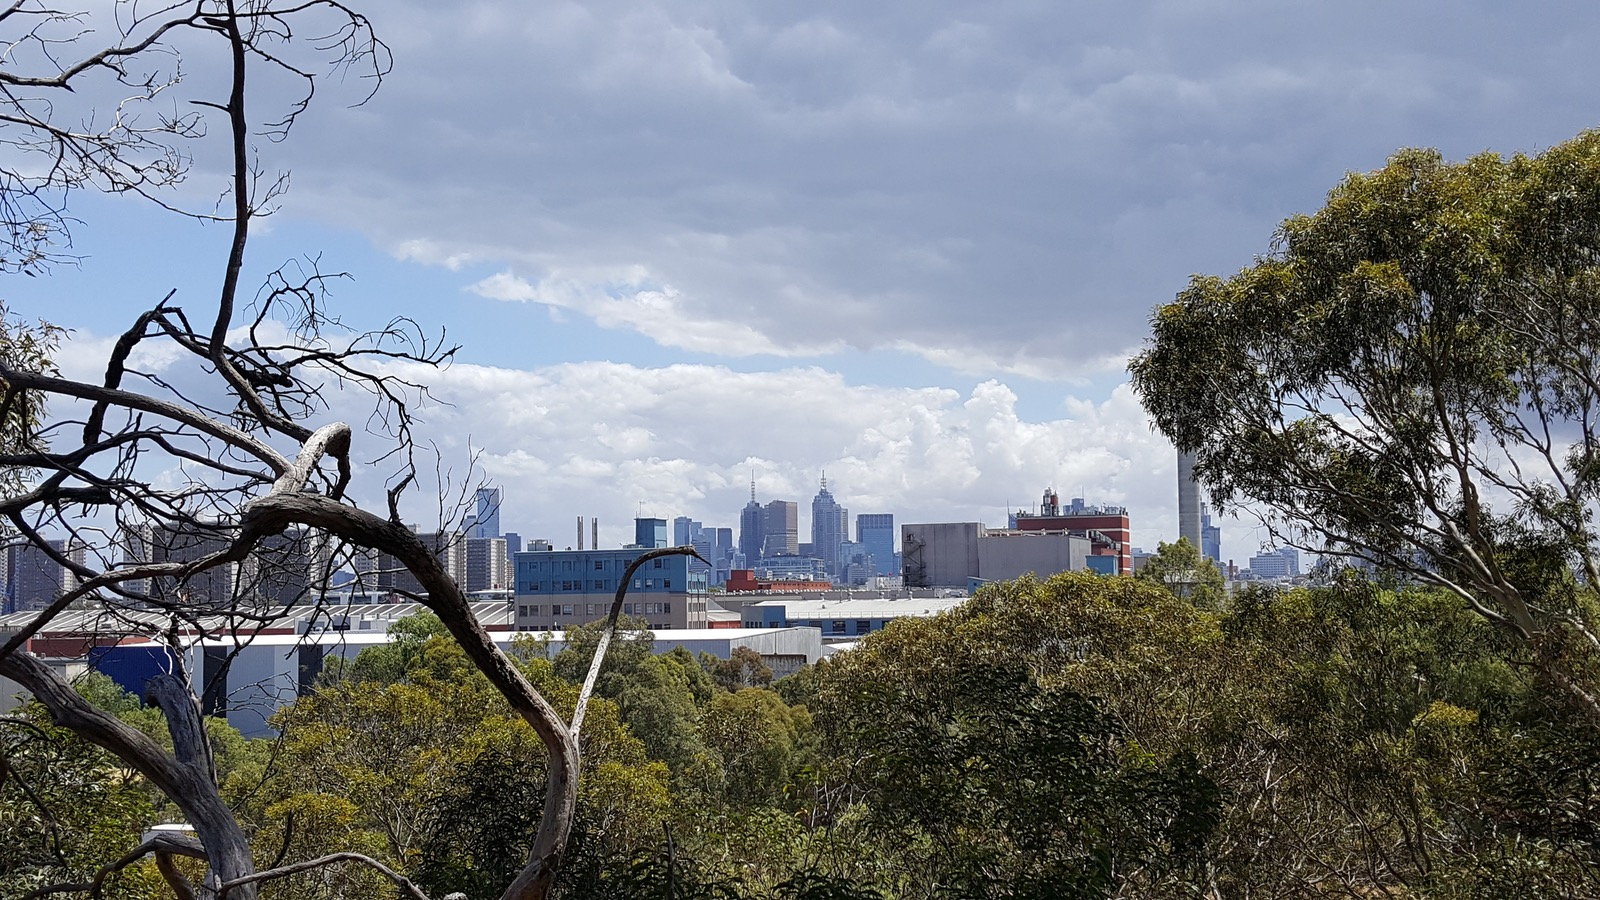 View of the CBD from the Yarra trail